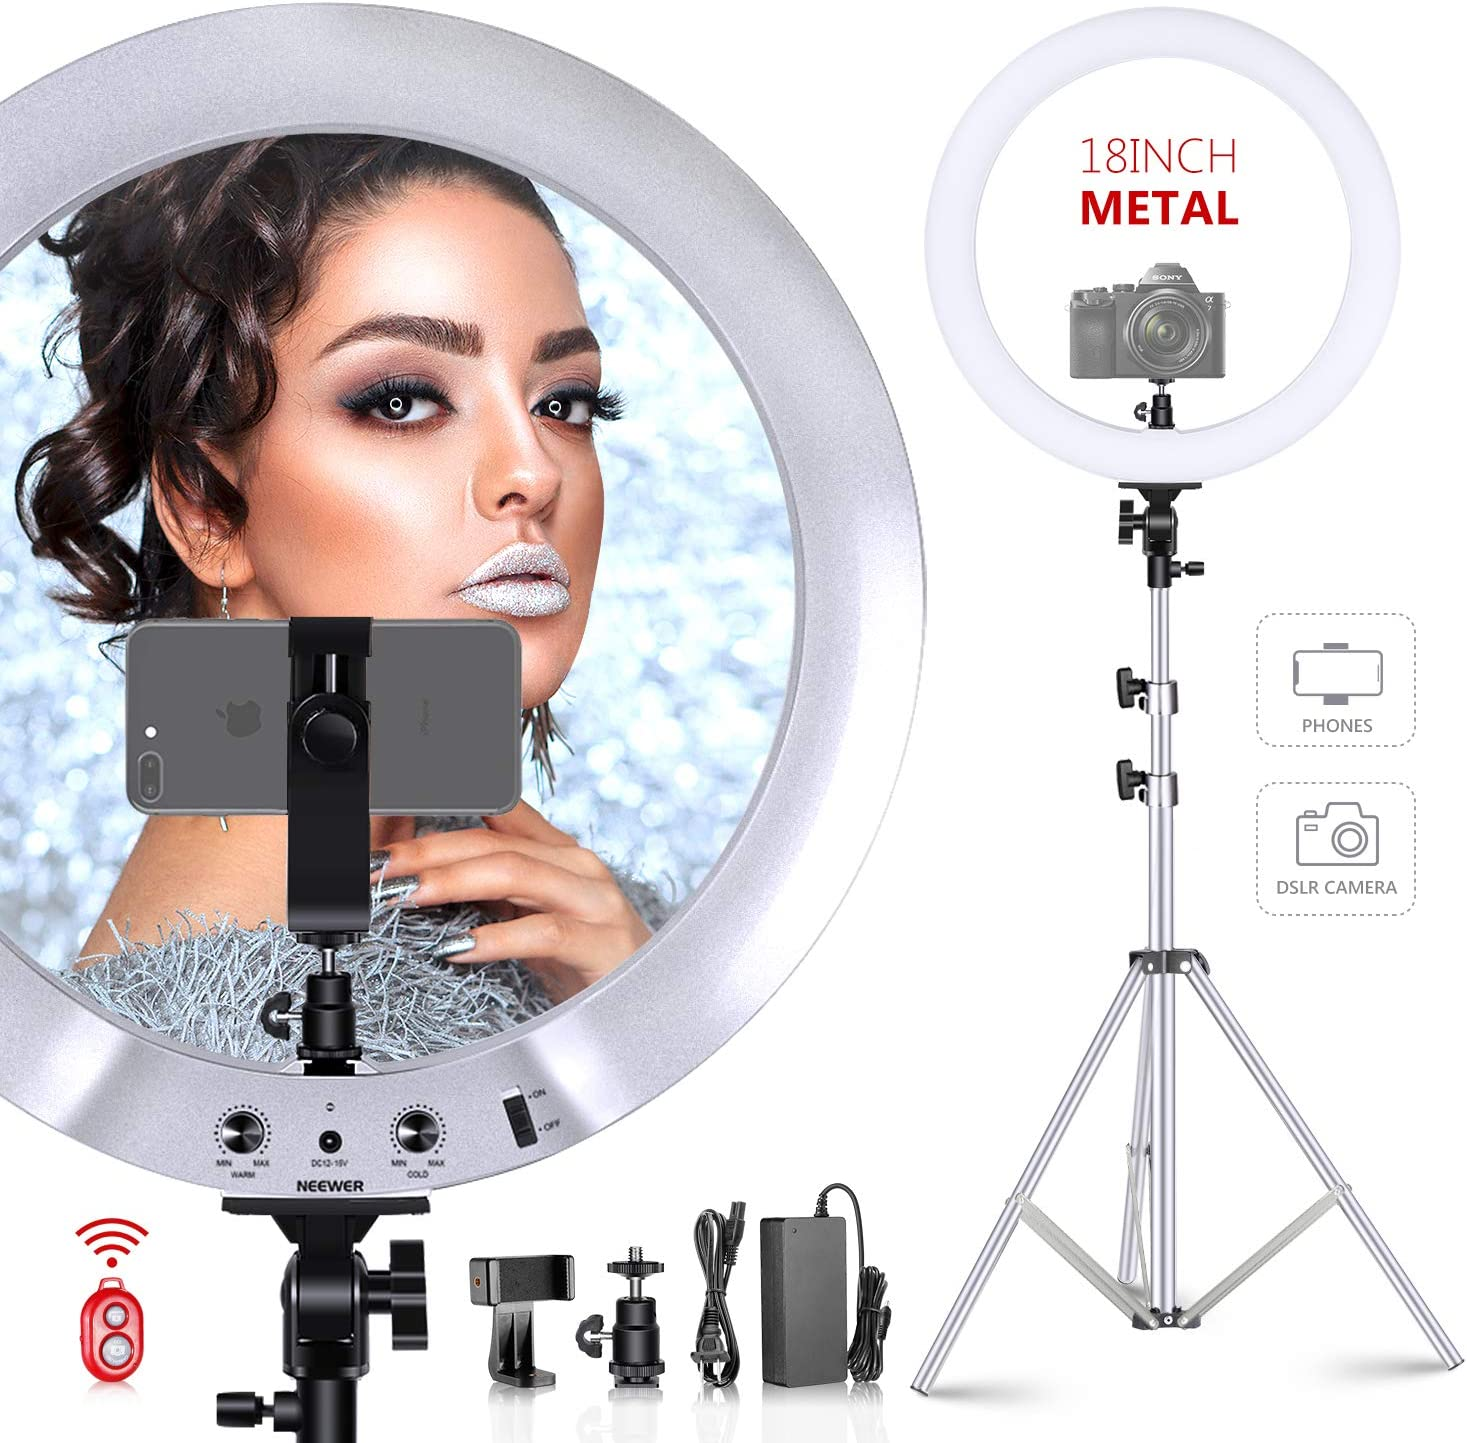 Neewer Upgraded 18-inch Ring Light Silver Metal Lighting Kit: 42W 3200-5600K Ring Light with Silver Aluminium Alloy Shell and Silver Stainless Steel Light Stand for Salon Selfie Make-up Video Shooting